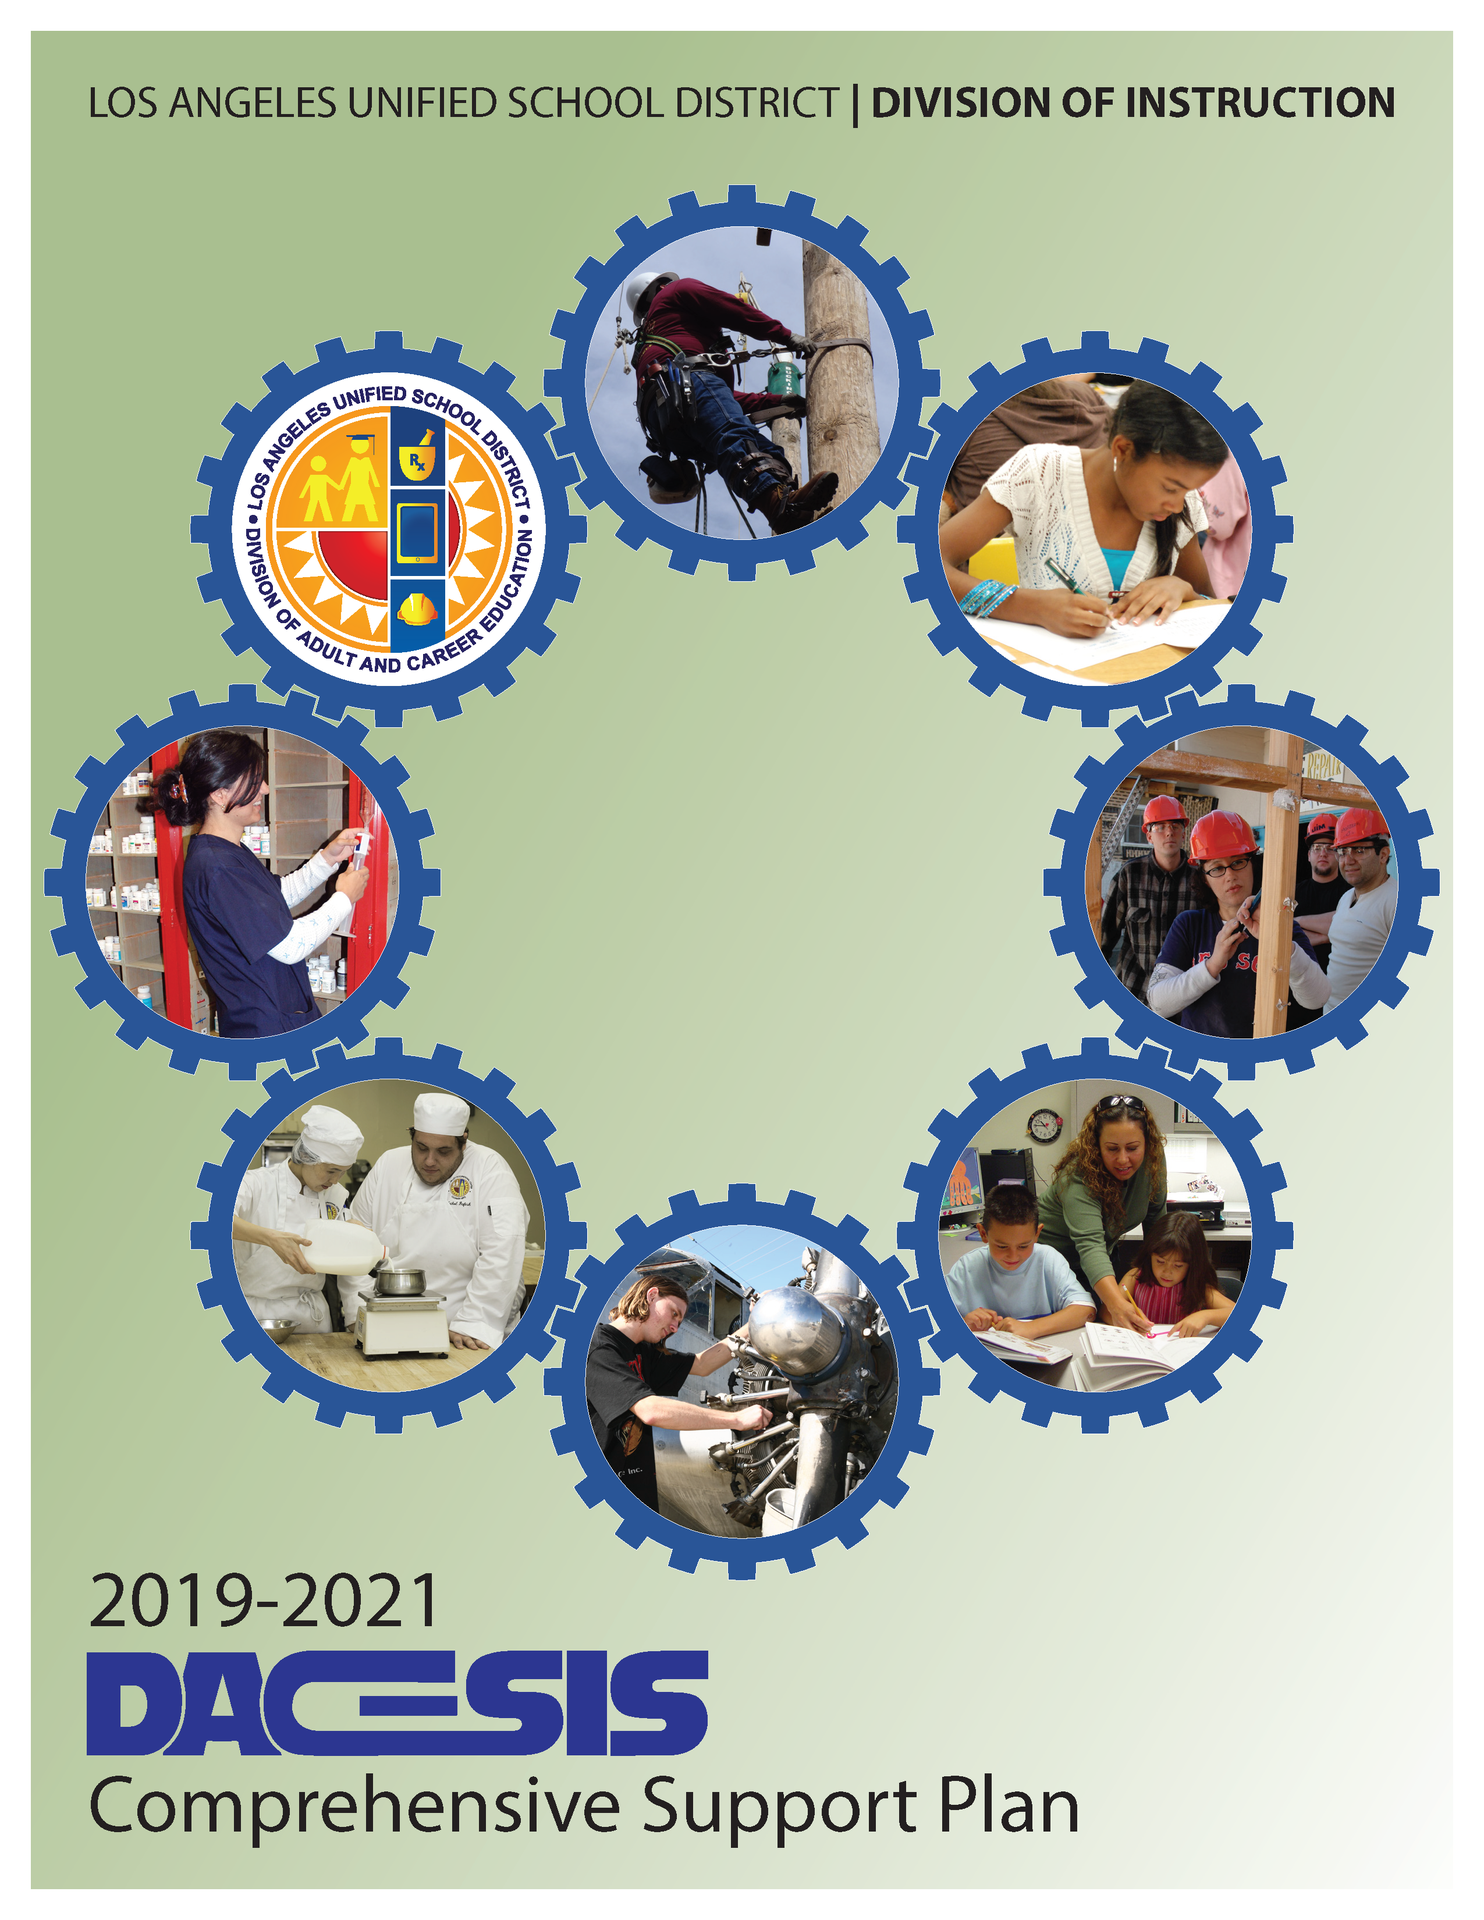 DACE-SIS Comprehensive Support Plan cover